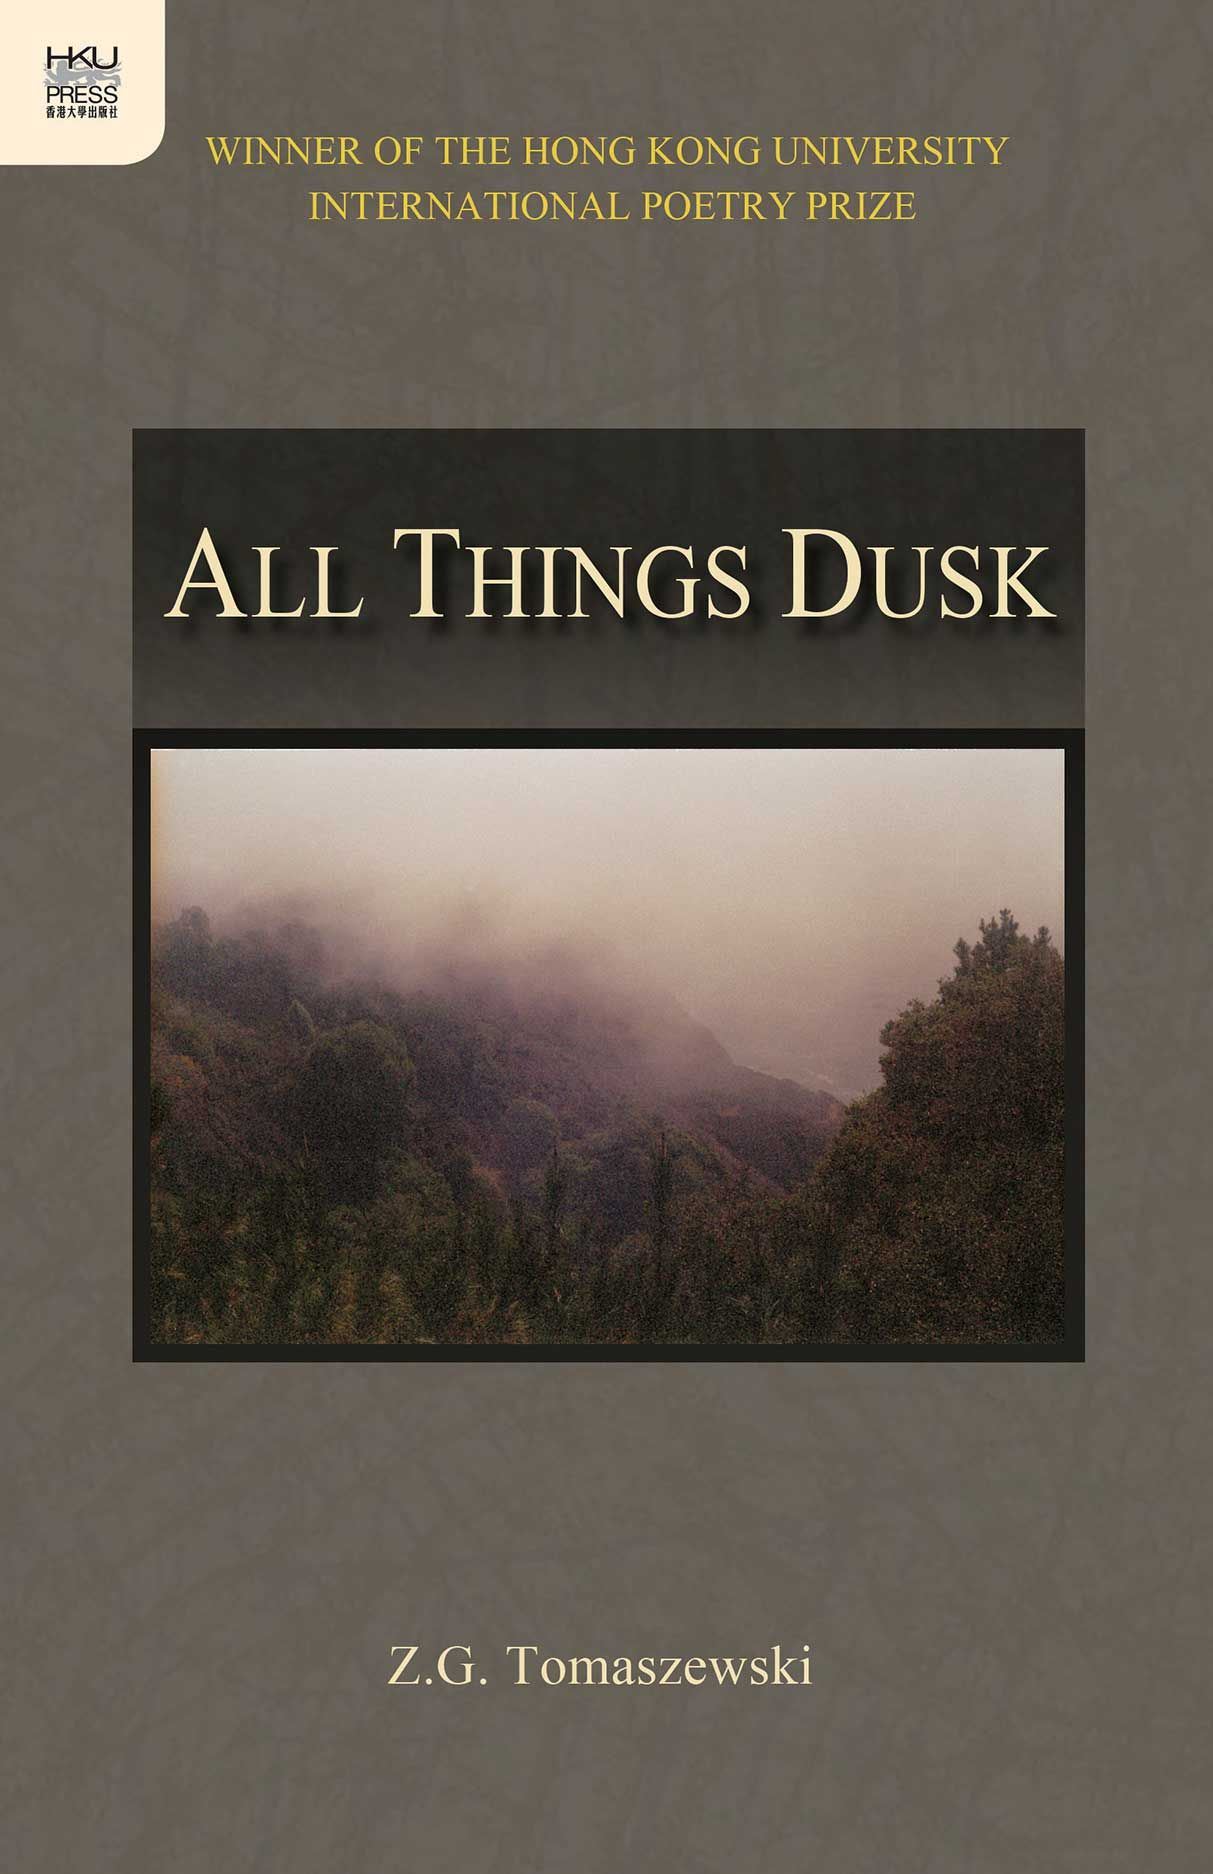 All Things Dusk